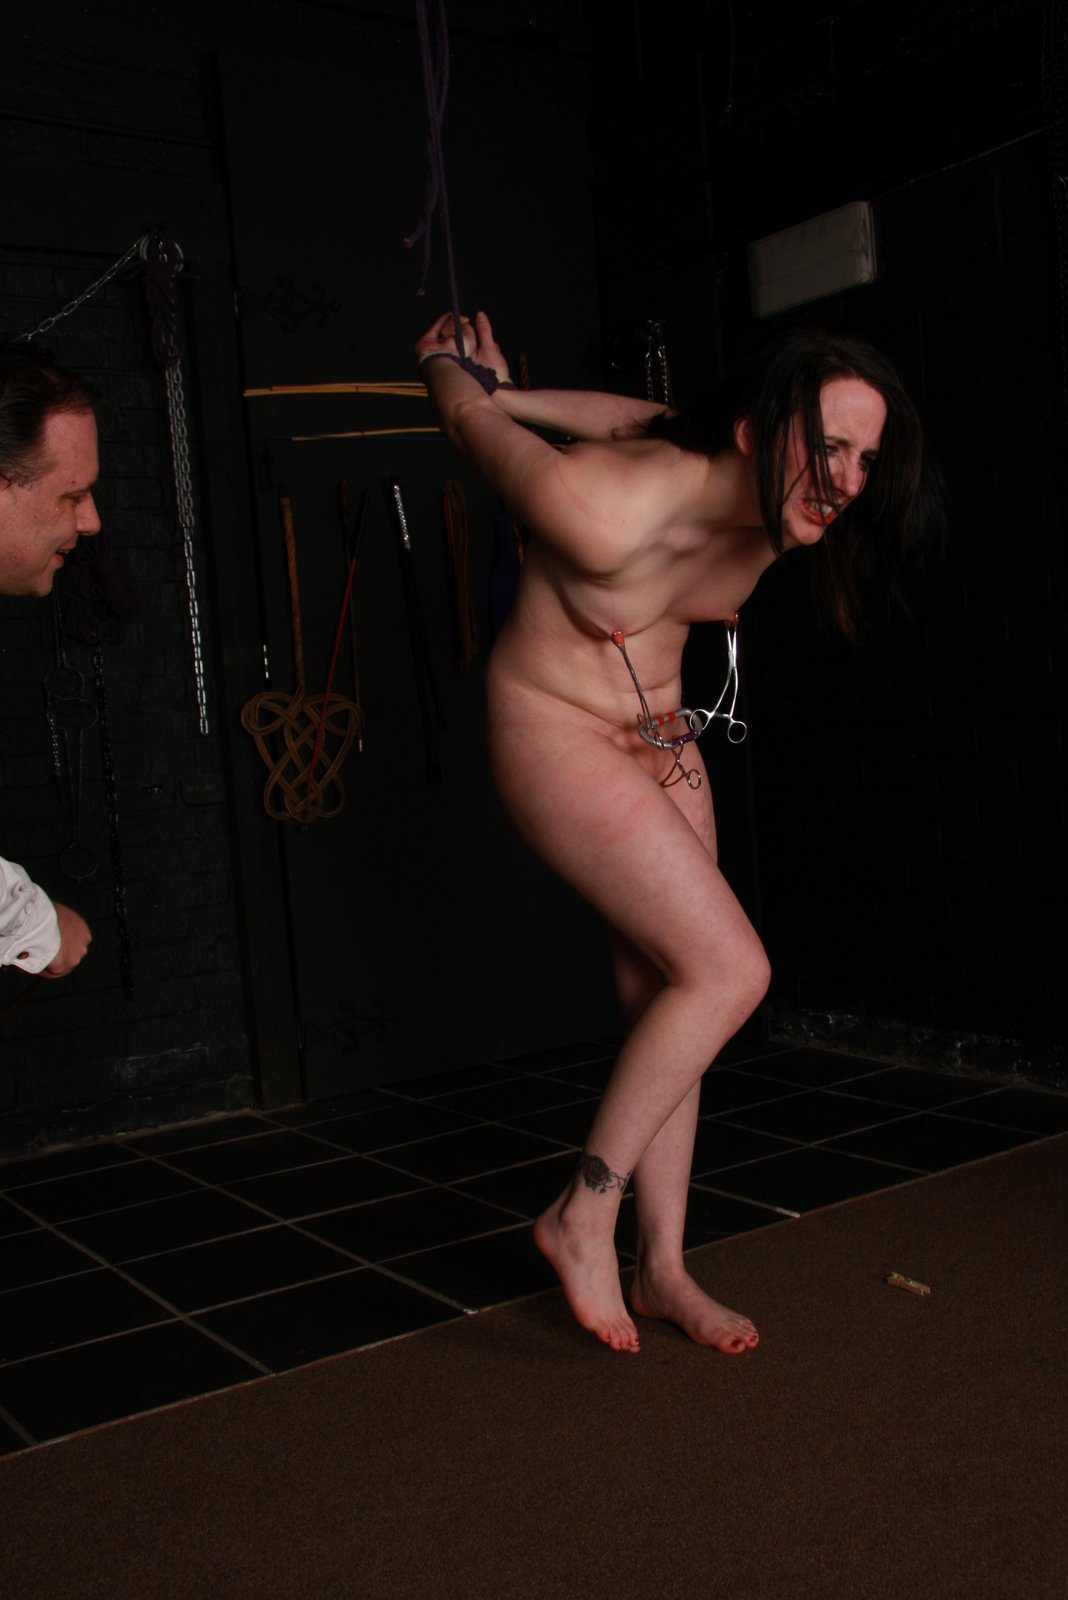 The Women in bdsm crying authoritative